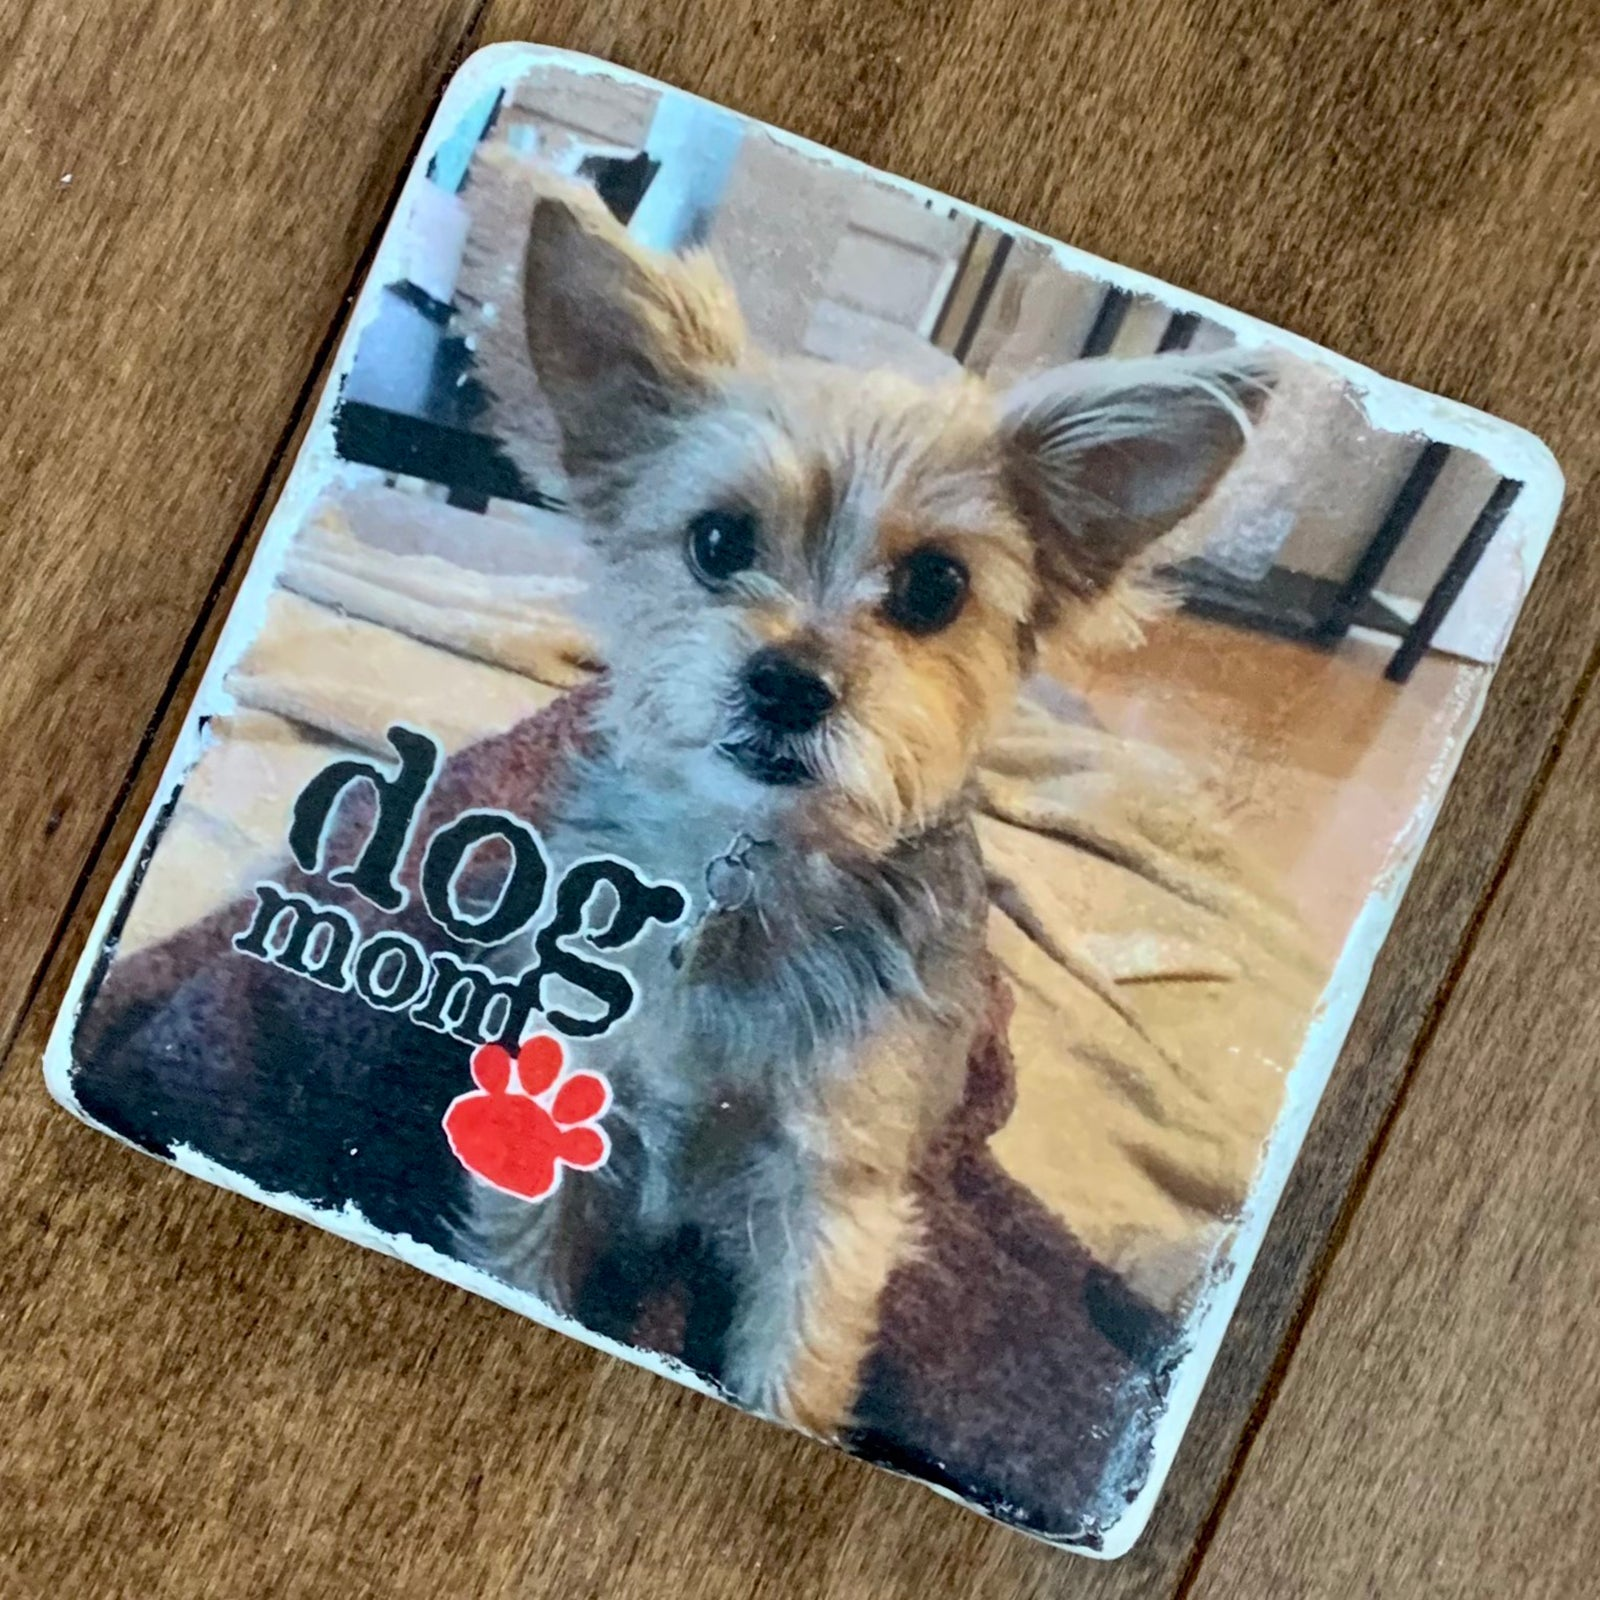 Dog Mom Natural Stone Coaster - Customized